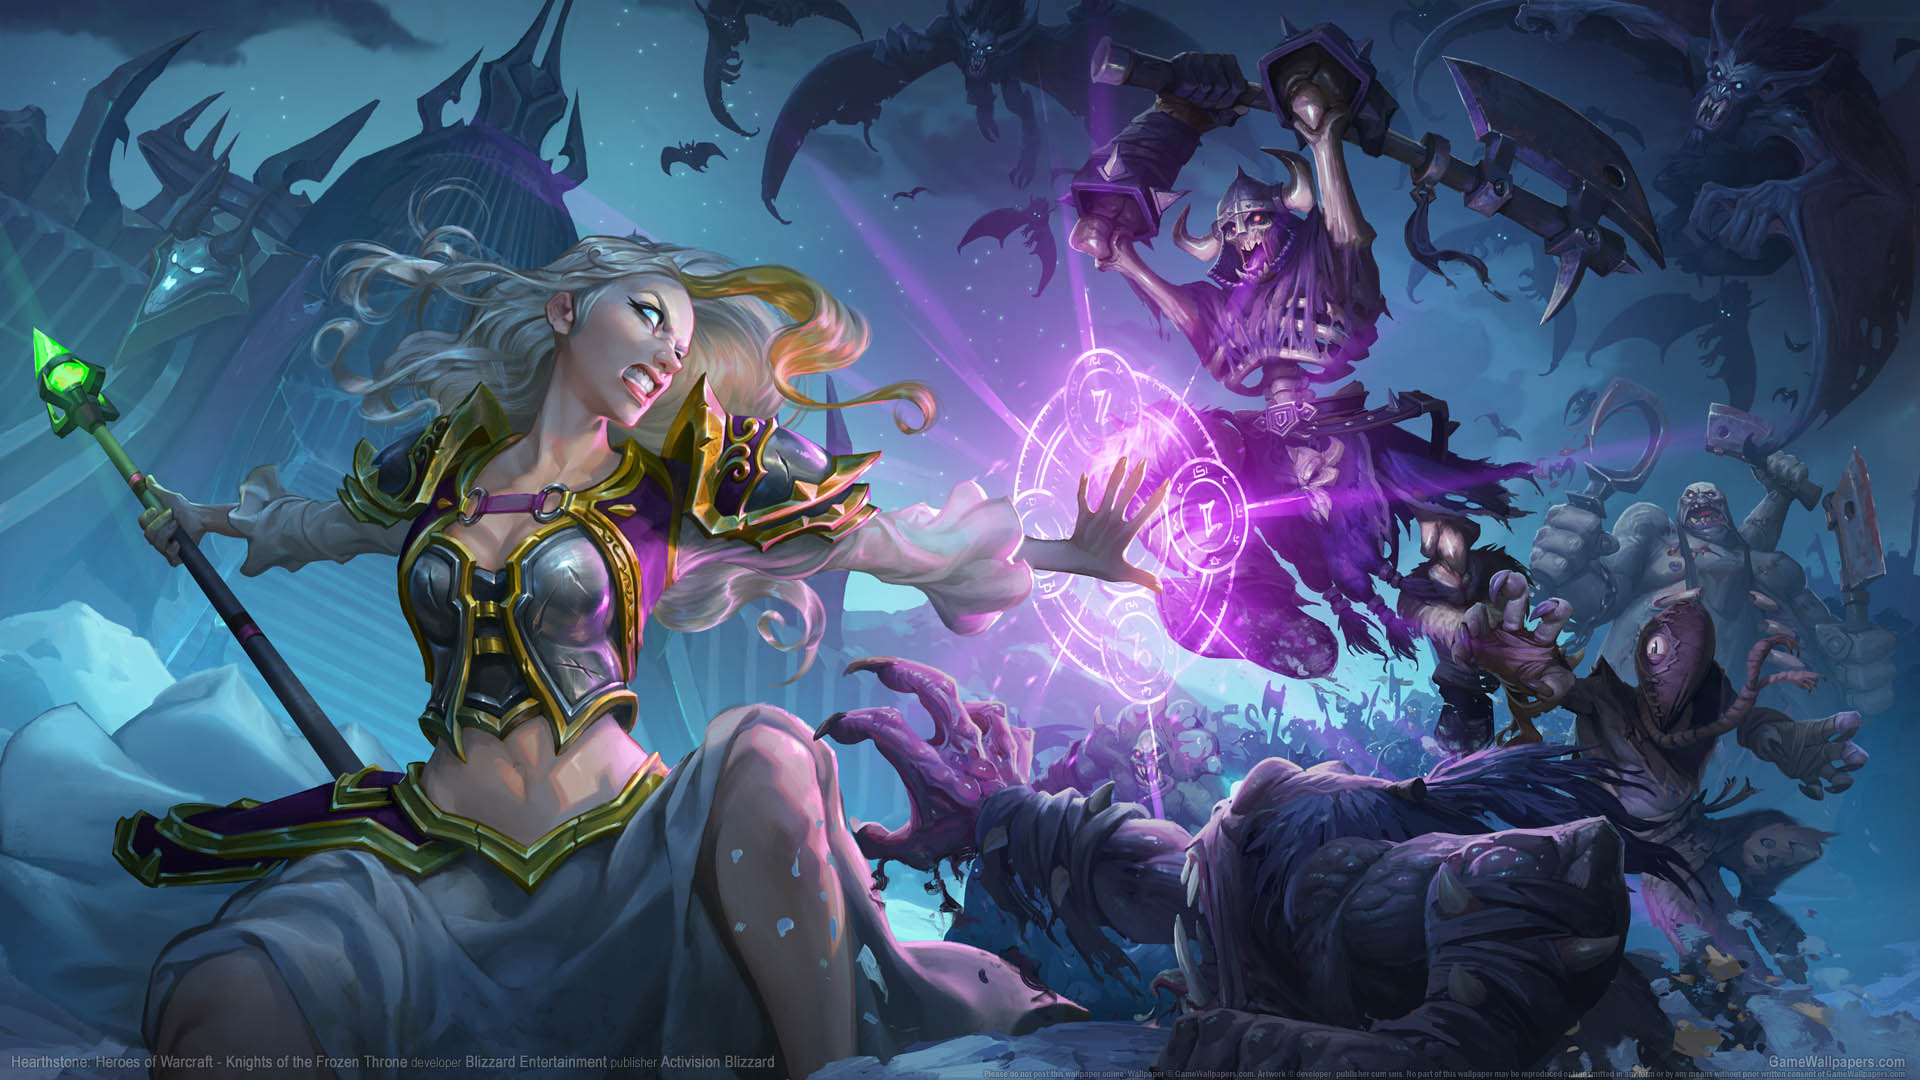 Hearthstone: Heroes of Warcraft - Knights of the Frozen Throne wallpaper 01 1920x1080